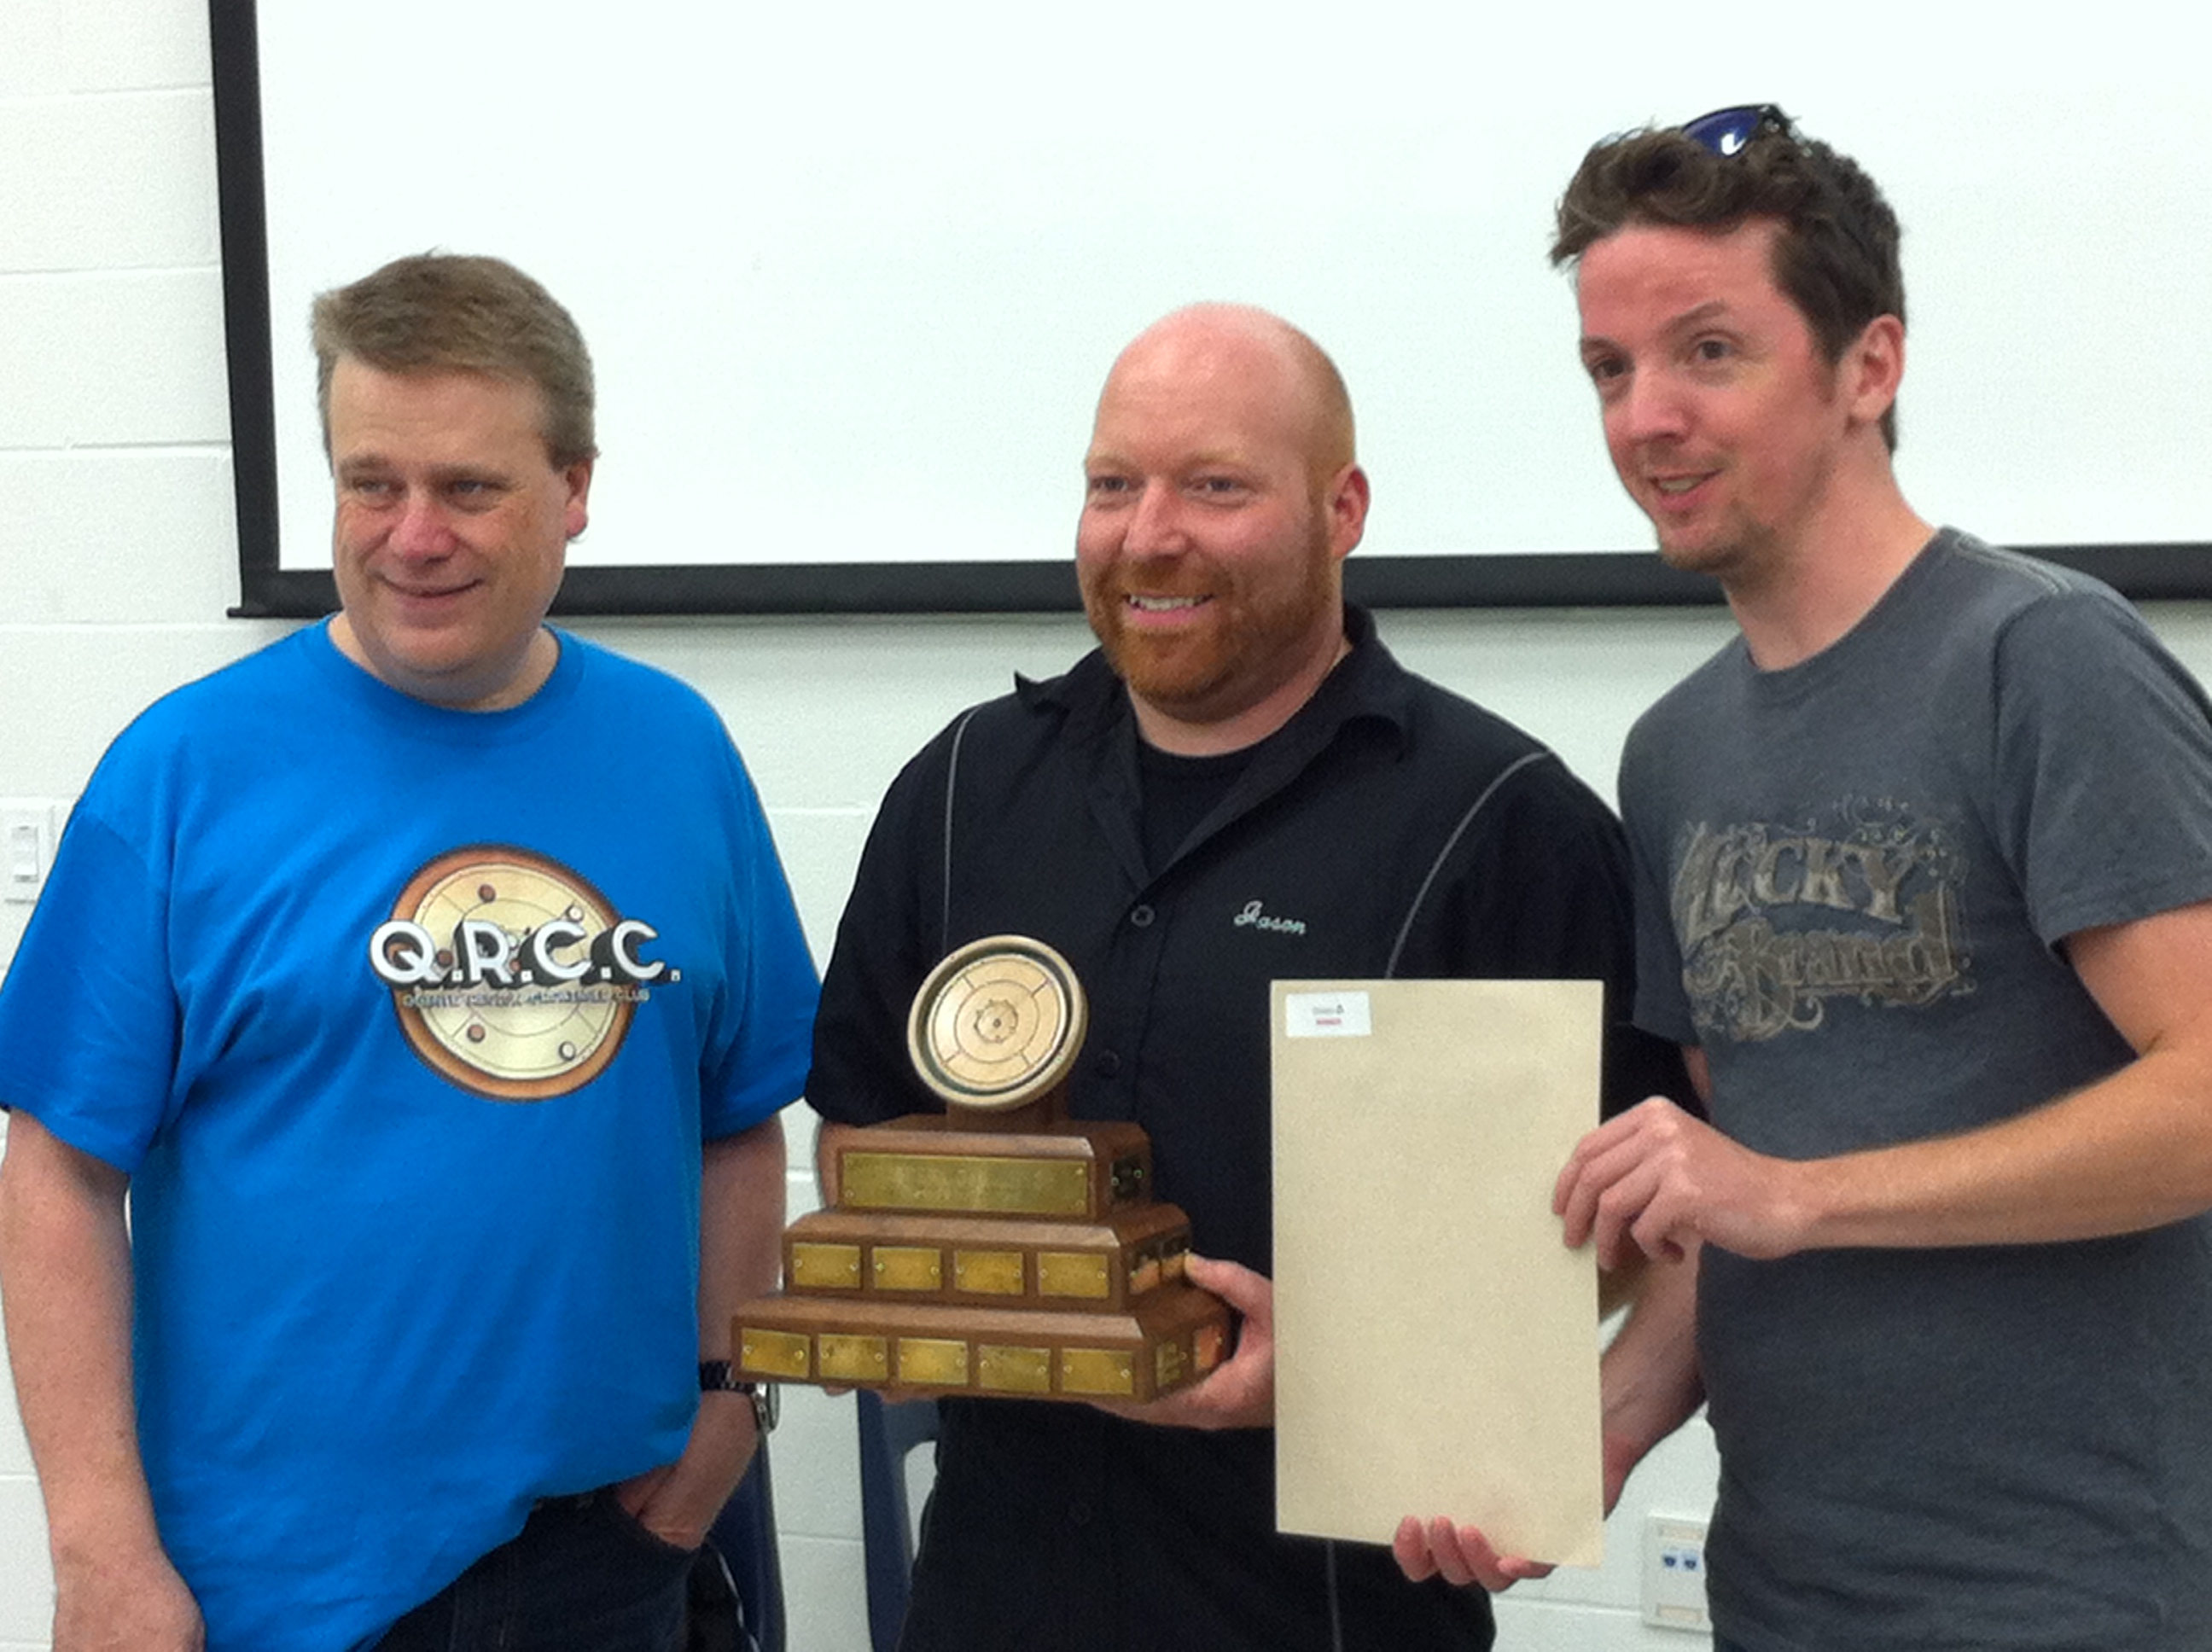 Jason Beierling receives championship trophy from event organizers, Chris Gorsline and Matt Brown